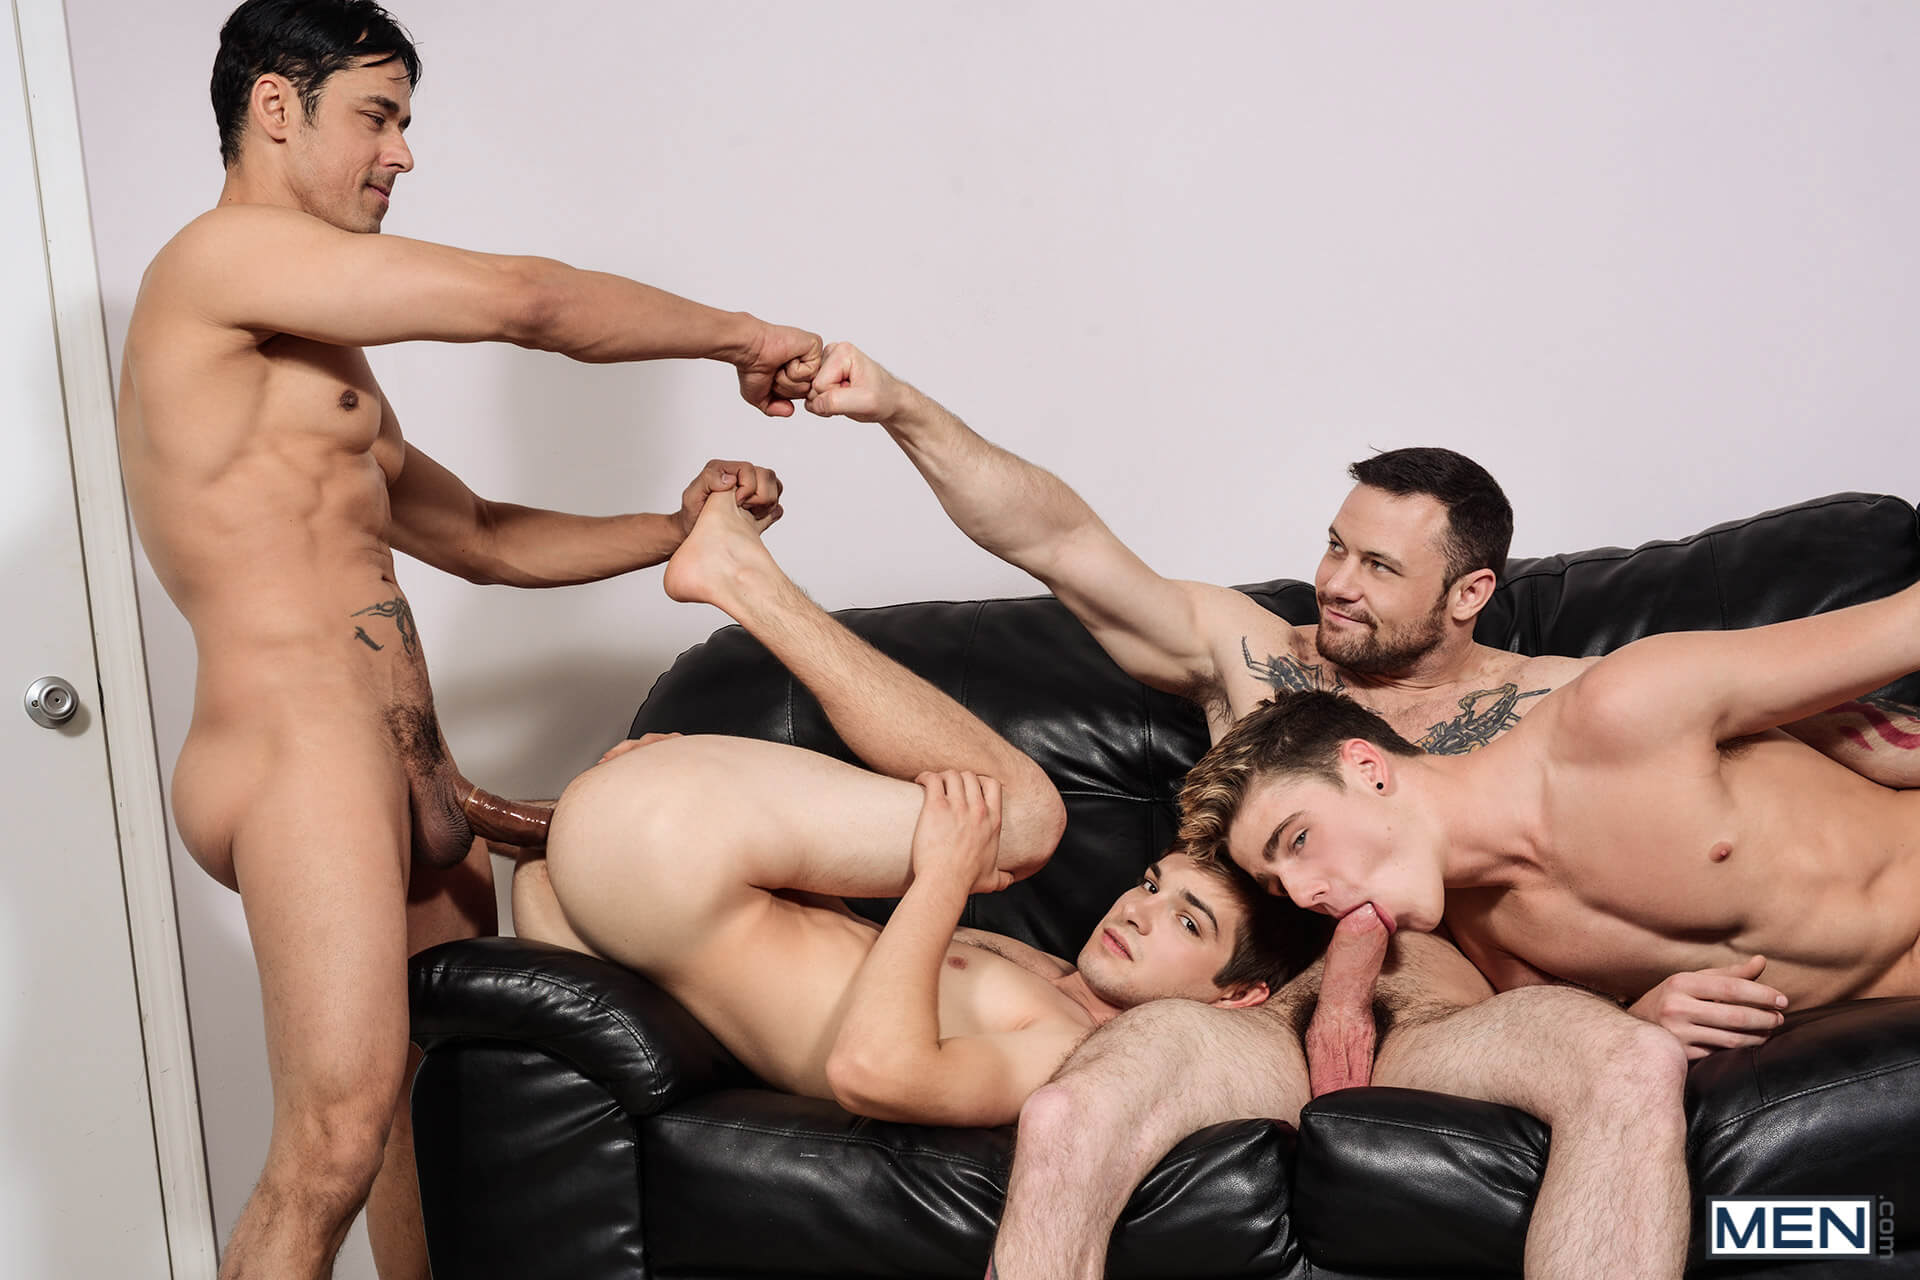 men jizz orgy im leaving you part 5 johnny rapid rafael alencar sergeant miles travis stevens gay porn blog image 25